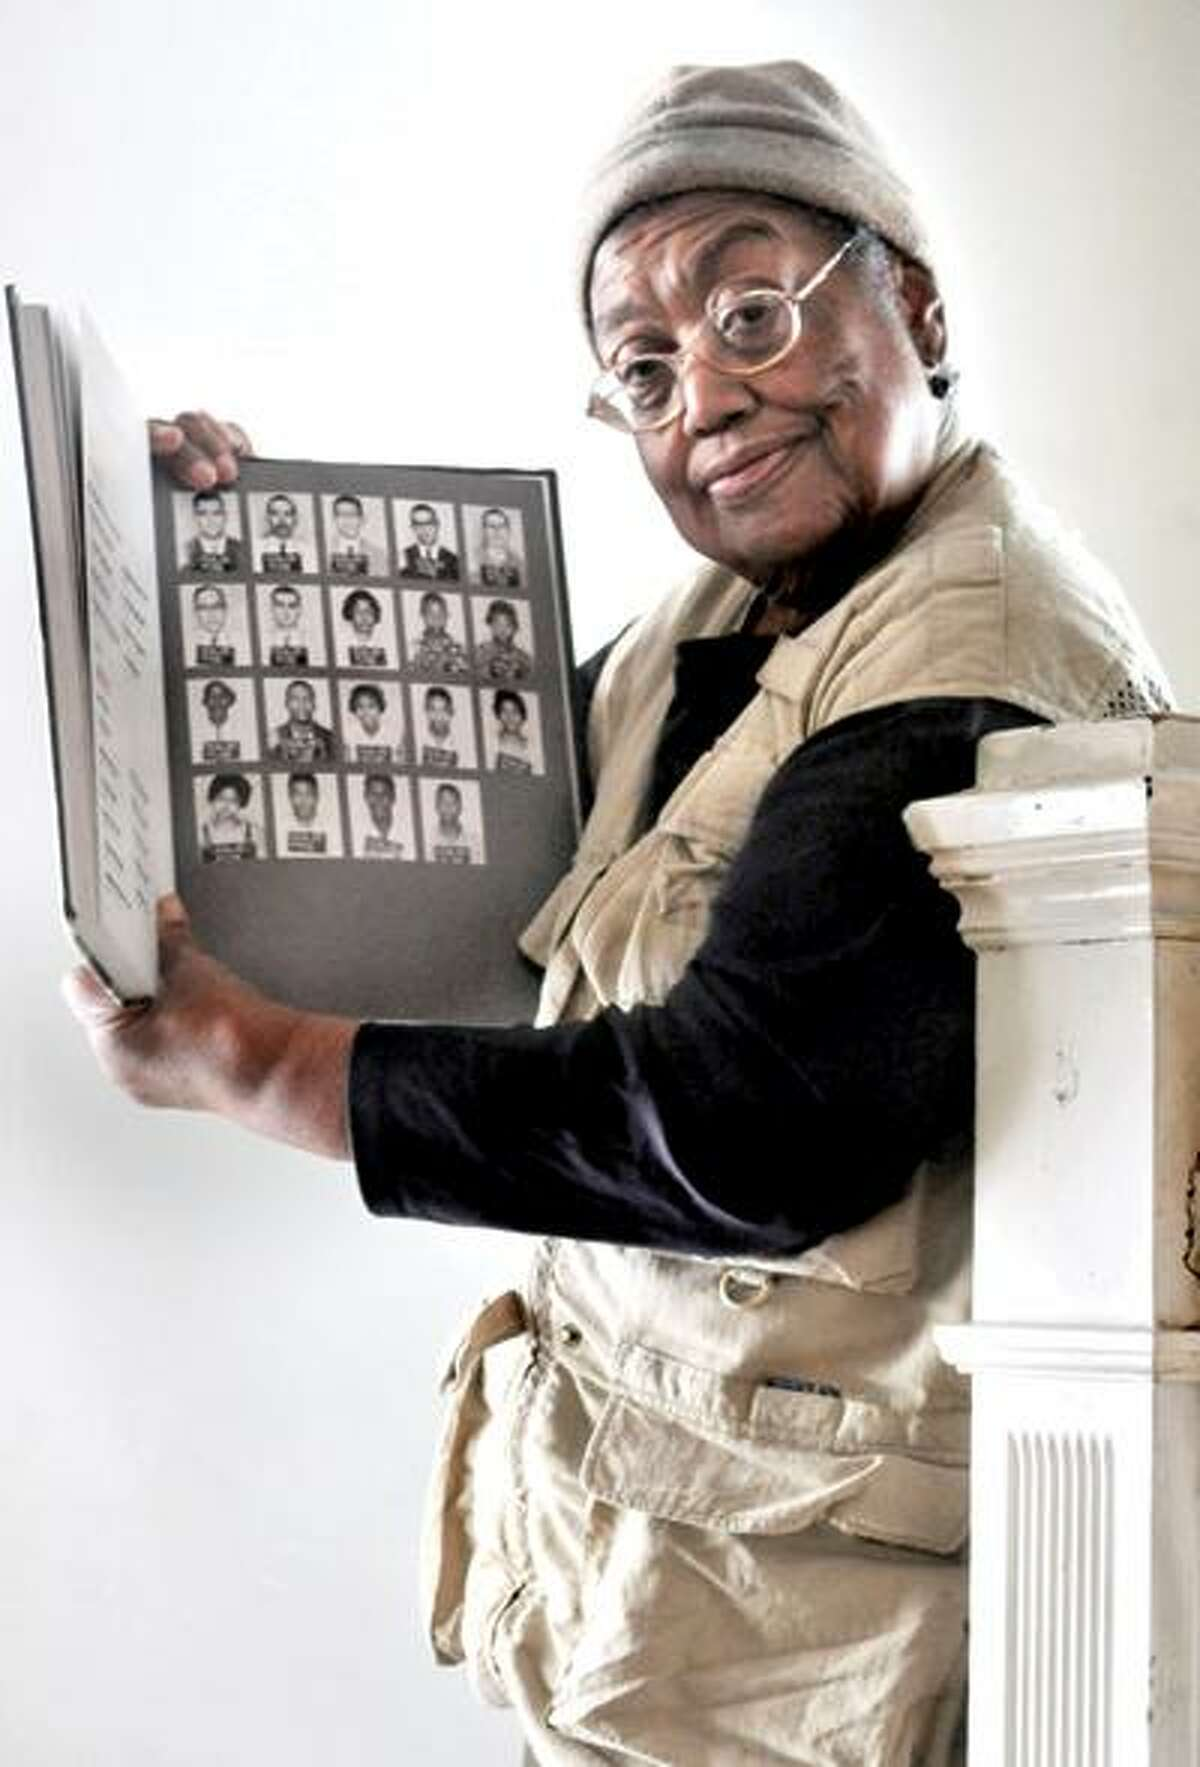 Melanie Stengel/Register photo: Retired New Haven history teacher Lula White, who now lives in Hamden, shows the mug shots of Freedom Riders, including one of herself. White spent time in the Mississippi State Penitentiary, also known as Parchman Farm, for her role in the protest.